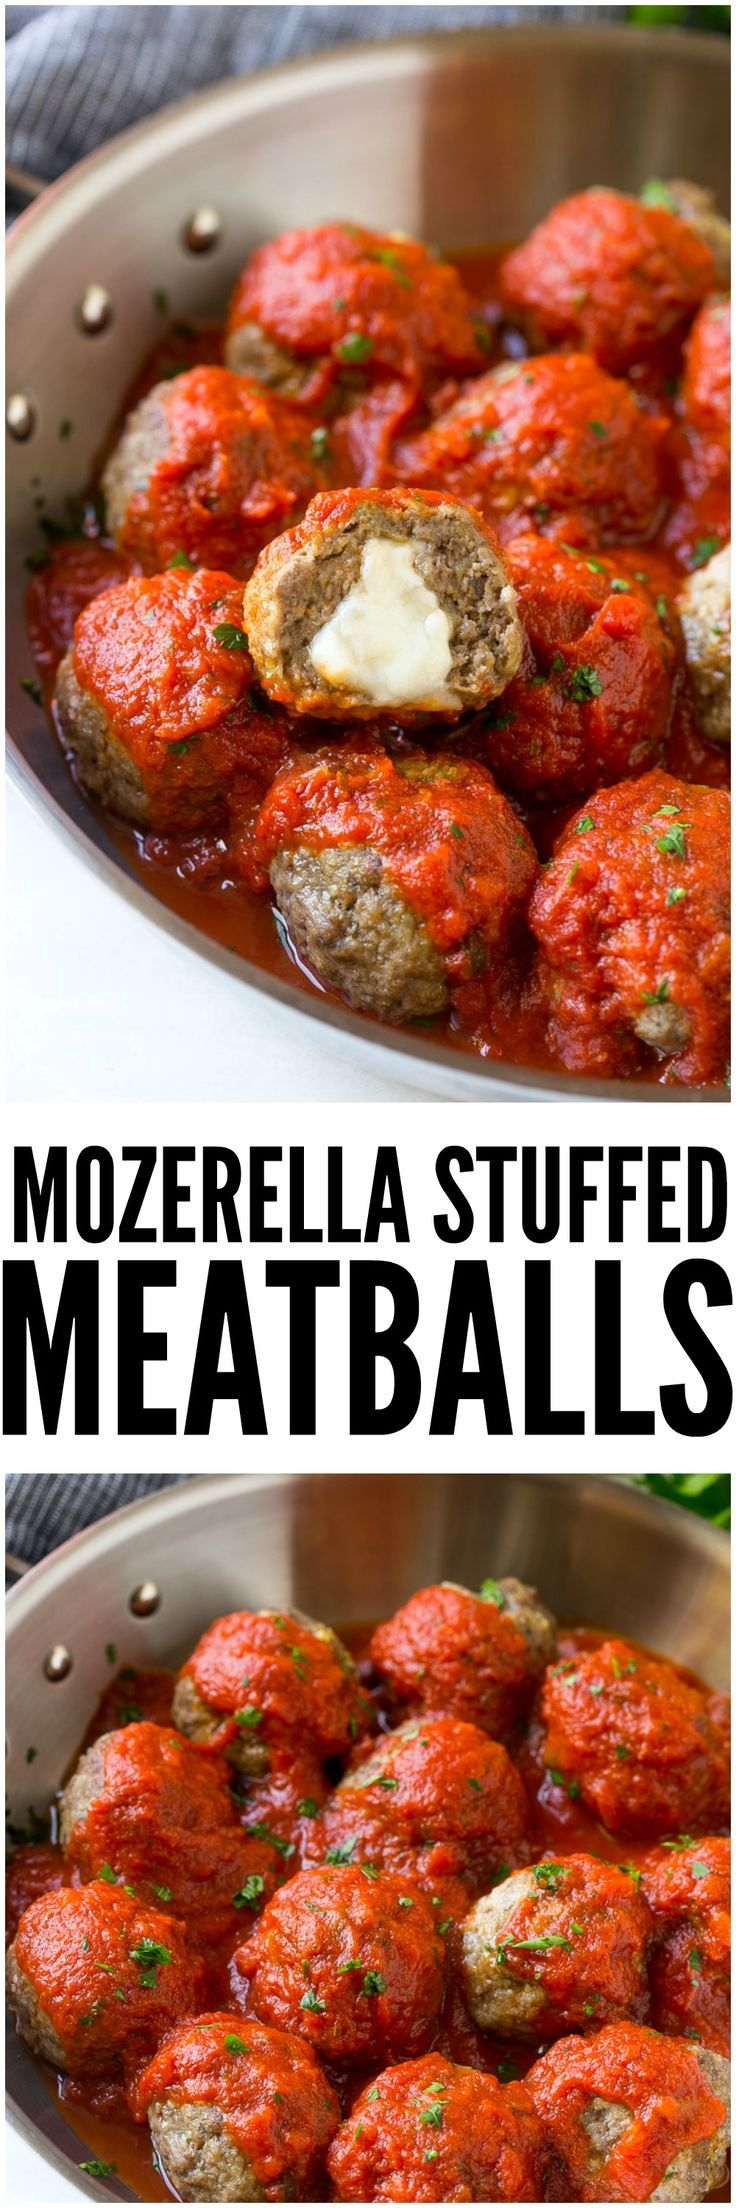 Mozzarella Stuffed Meatballs are a fun twist on the classic recipe - serve these meatballs as a party appetizer or over a big plate of spaghetti for a hearty meal!